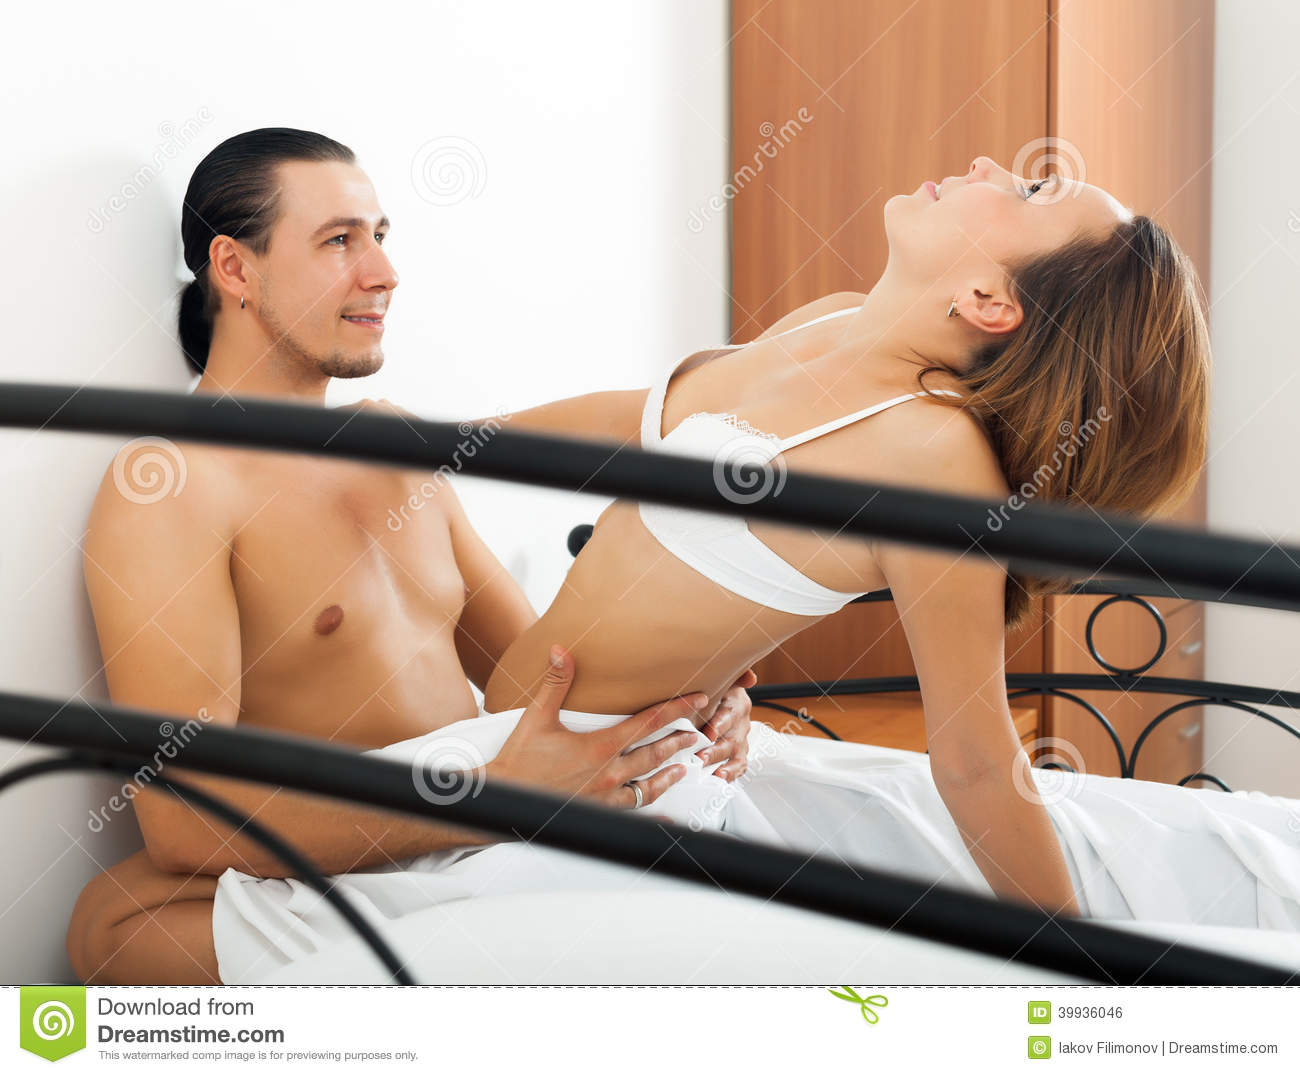 Woman naked in sex with man